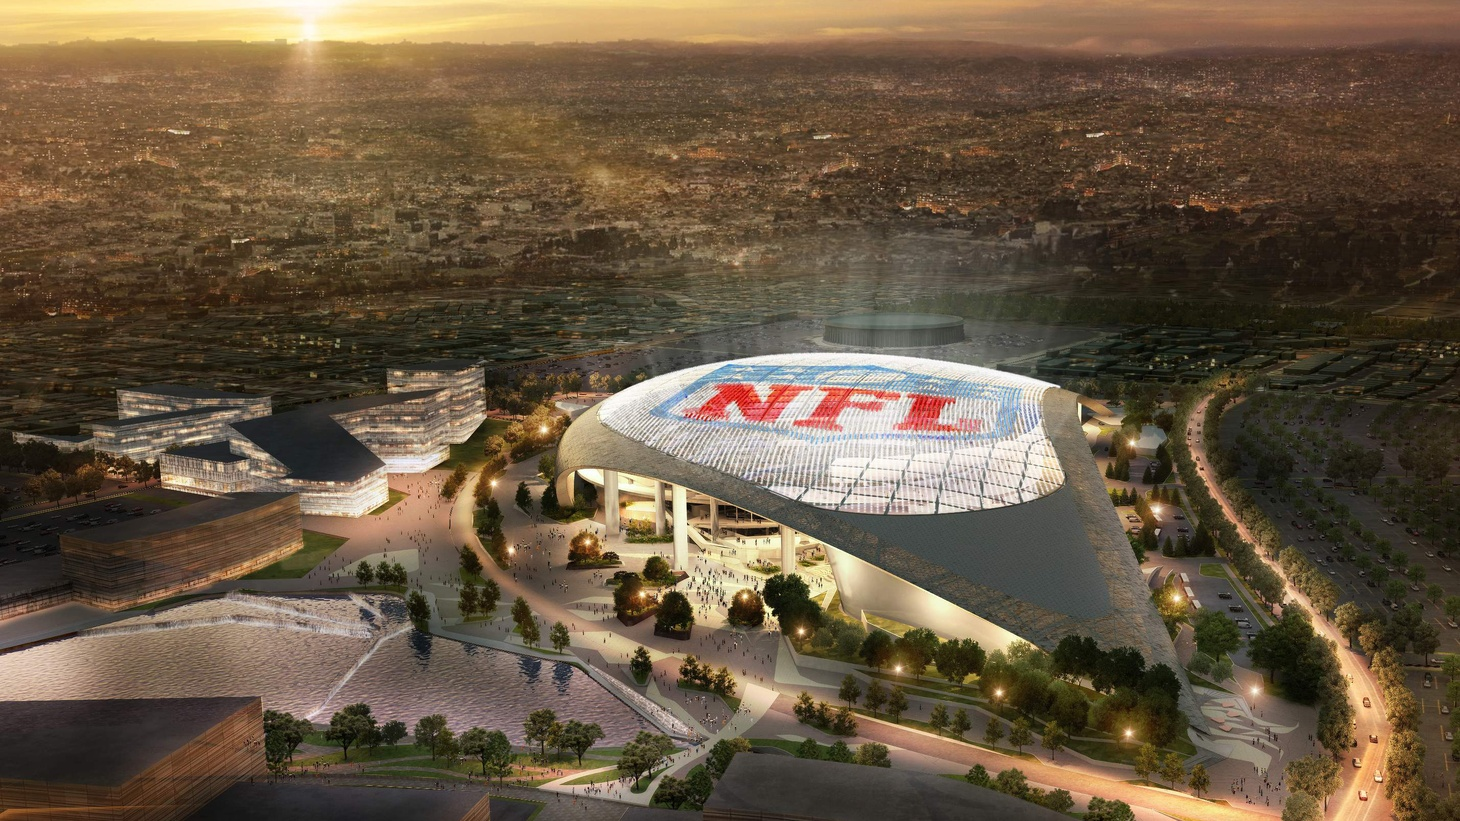 """Will the new NFL stadium in Inglewood be a """"monolithic hulk"""" or an """"aesthetic anchor"""" for a popular entertainment district? Designers, critics and the mayor of Inglewood discuss the design and its urban impact. Plus, a Frank Lloyd Wright house in Brentwood goes on the auction block."""